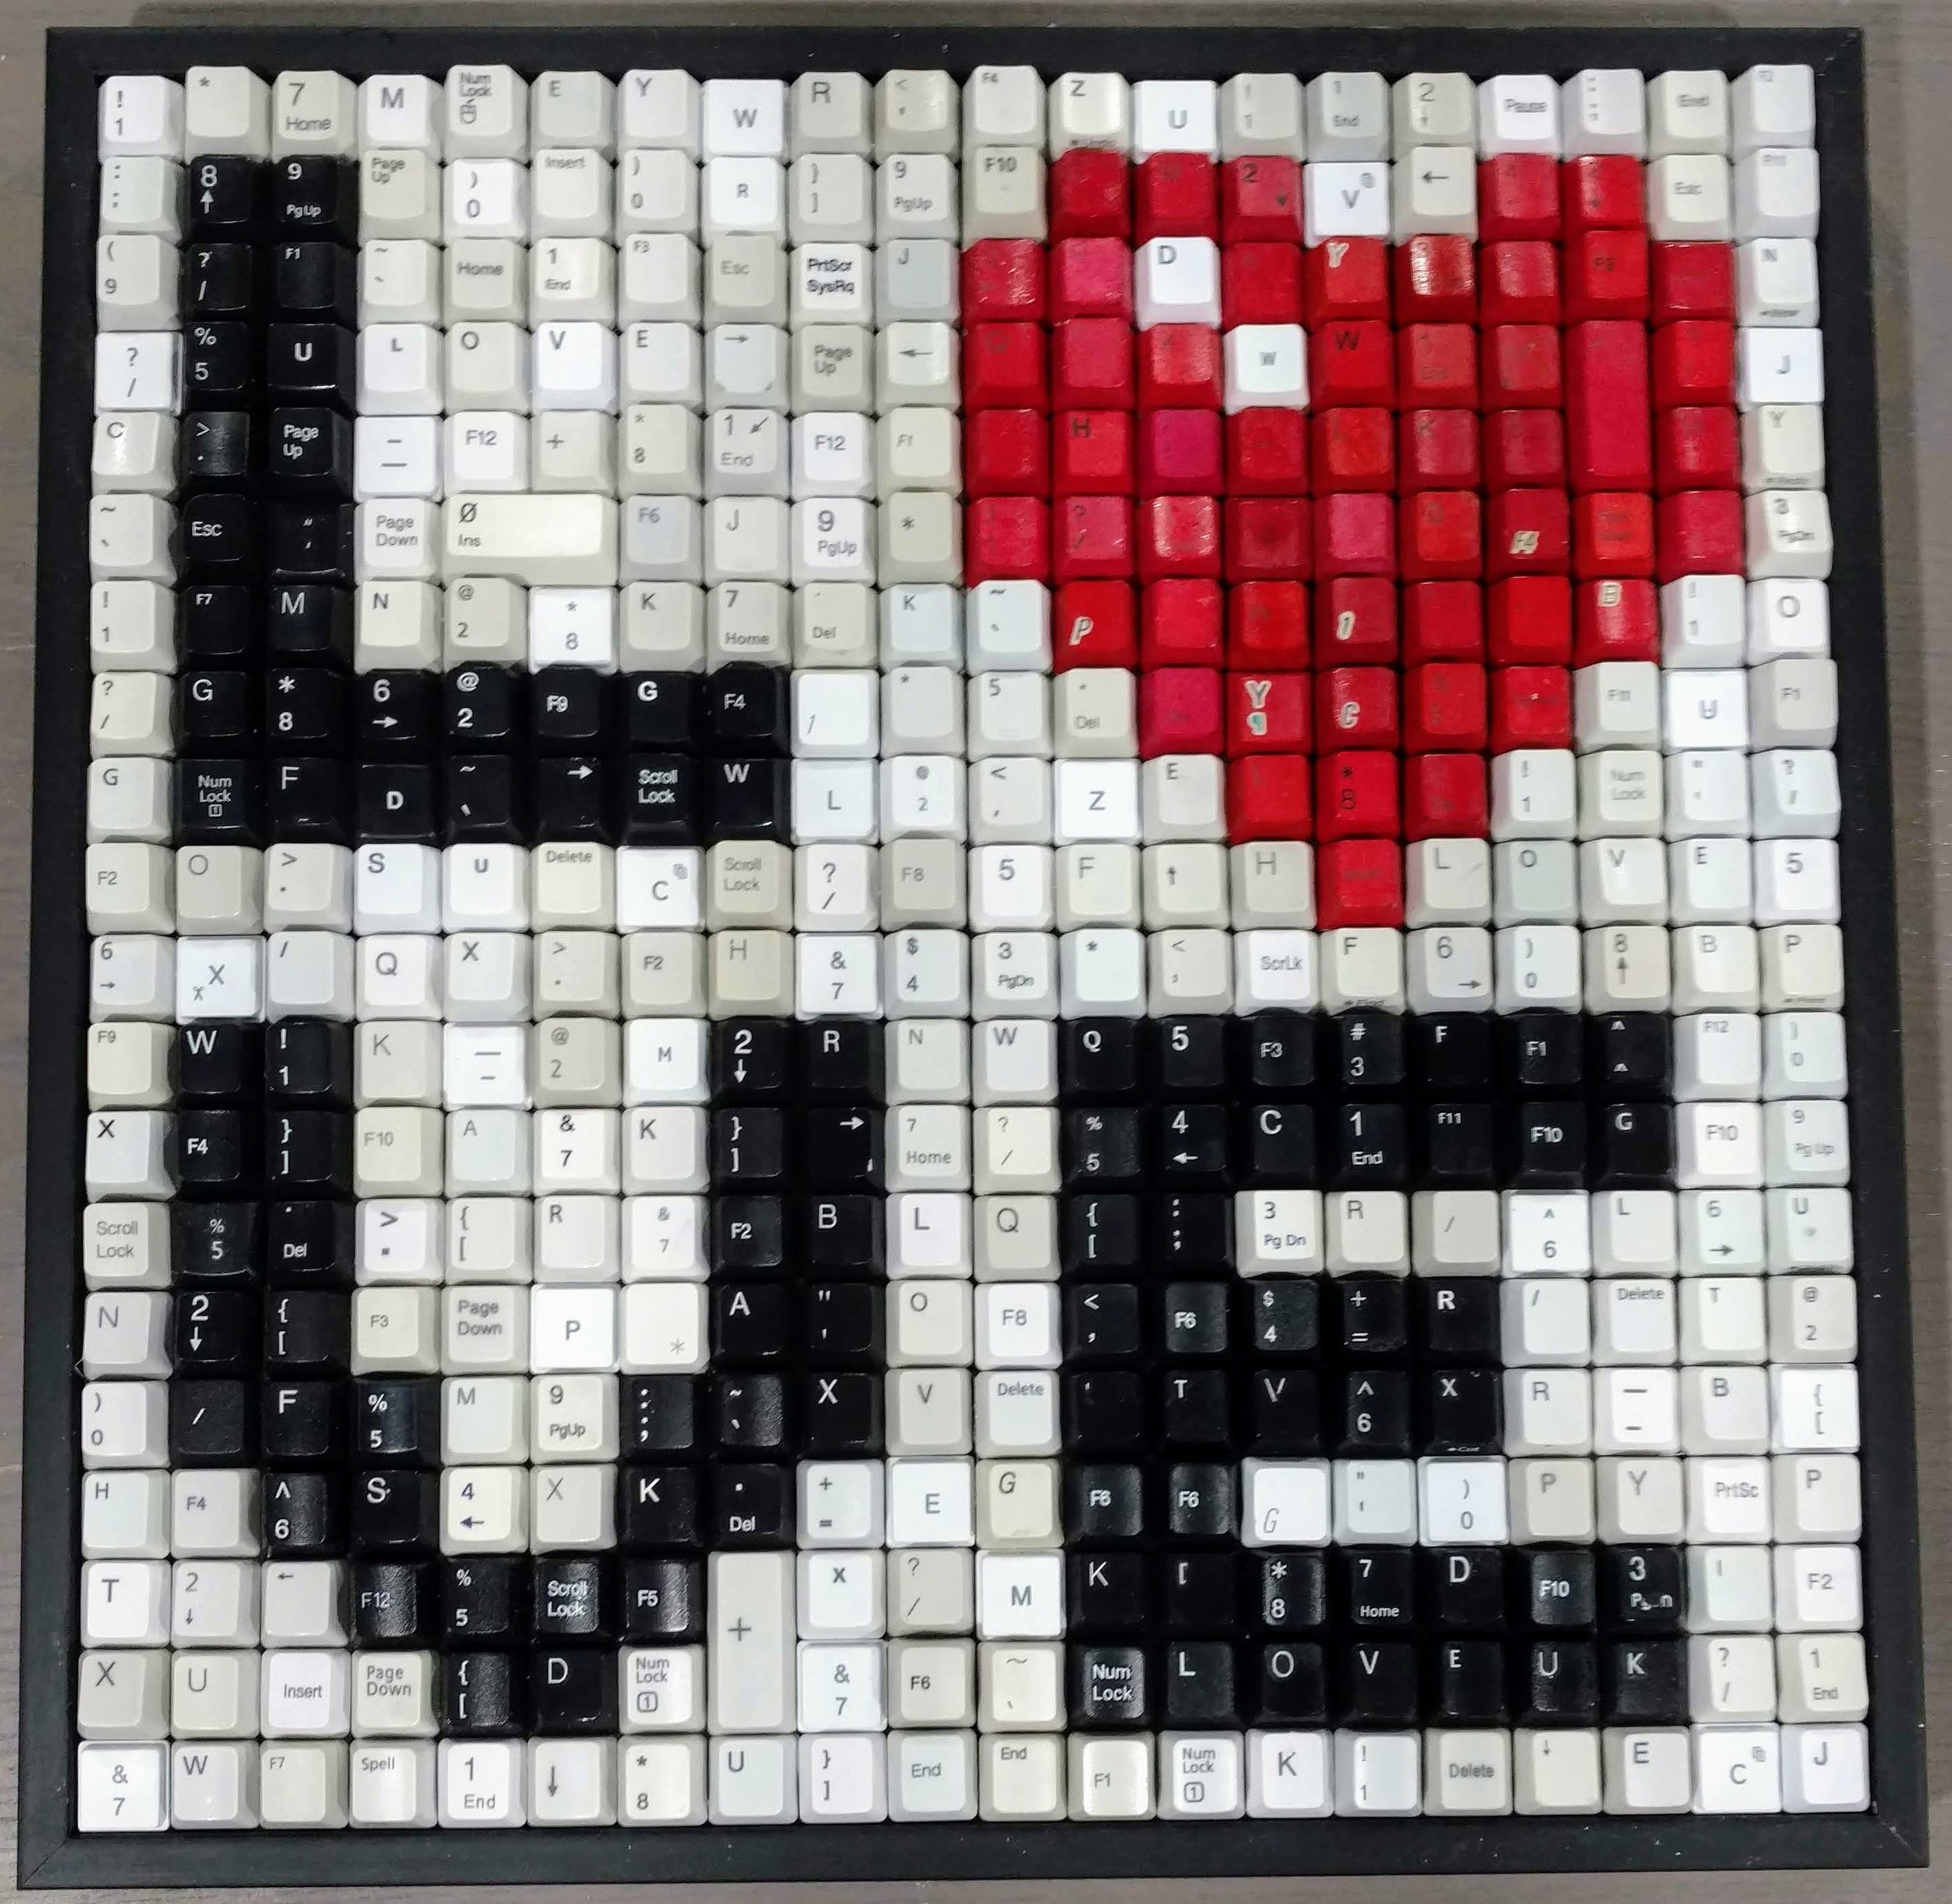 LOVE - WHITE BACKGROUND  | 15 X 15 in   ORIGINAL